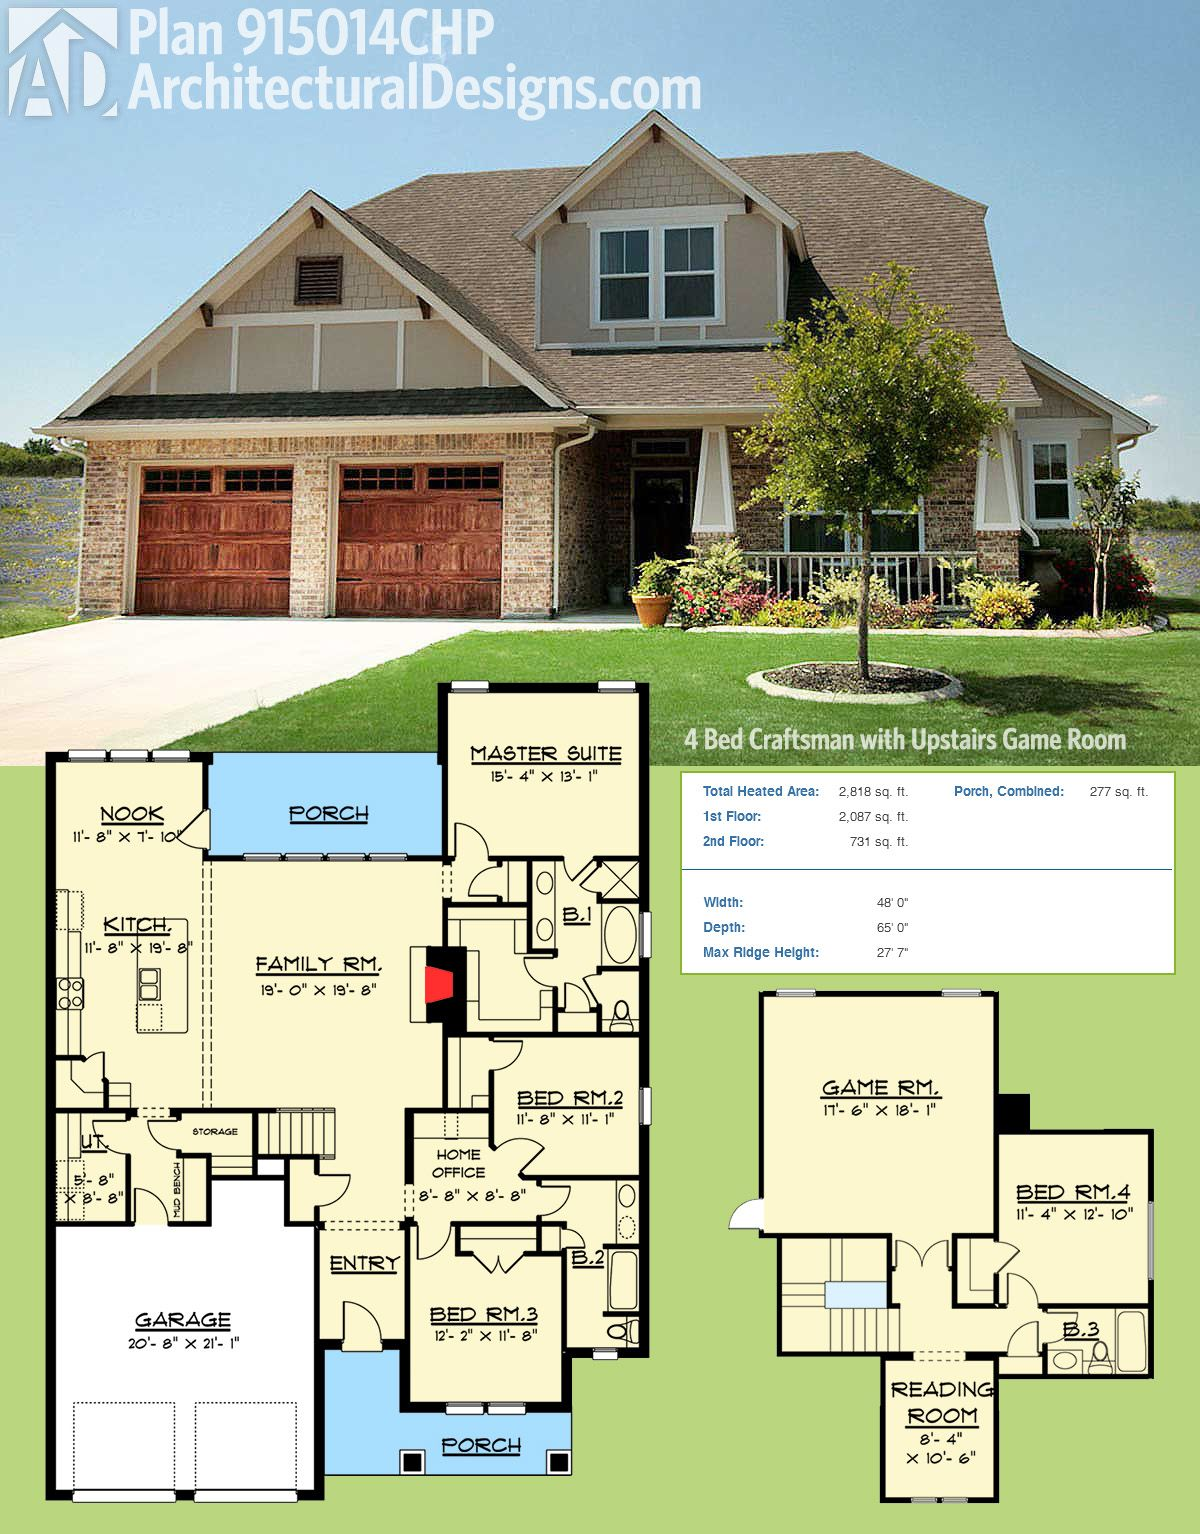 Architectural Designs Craftsman House Plan 915014chp Gives